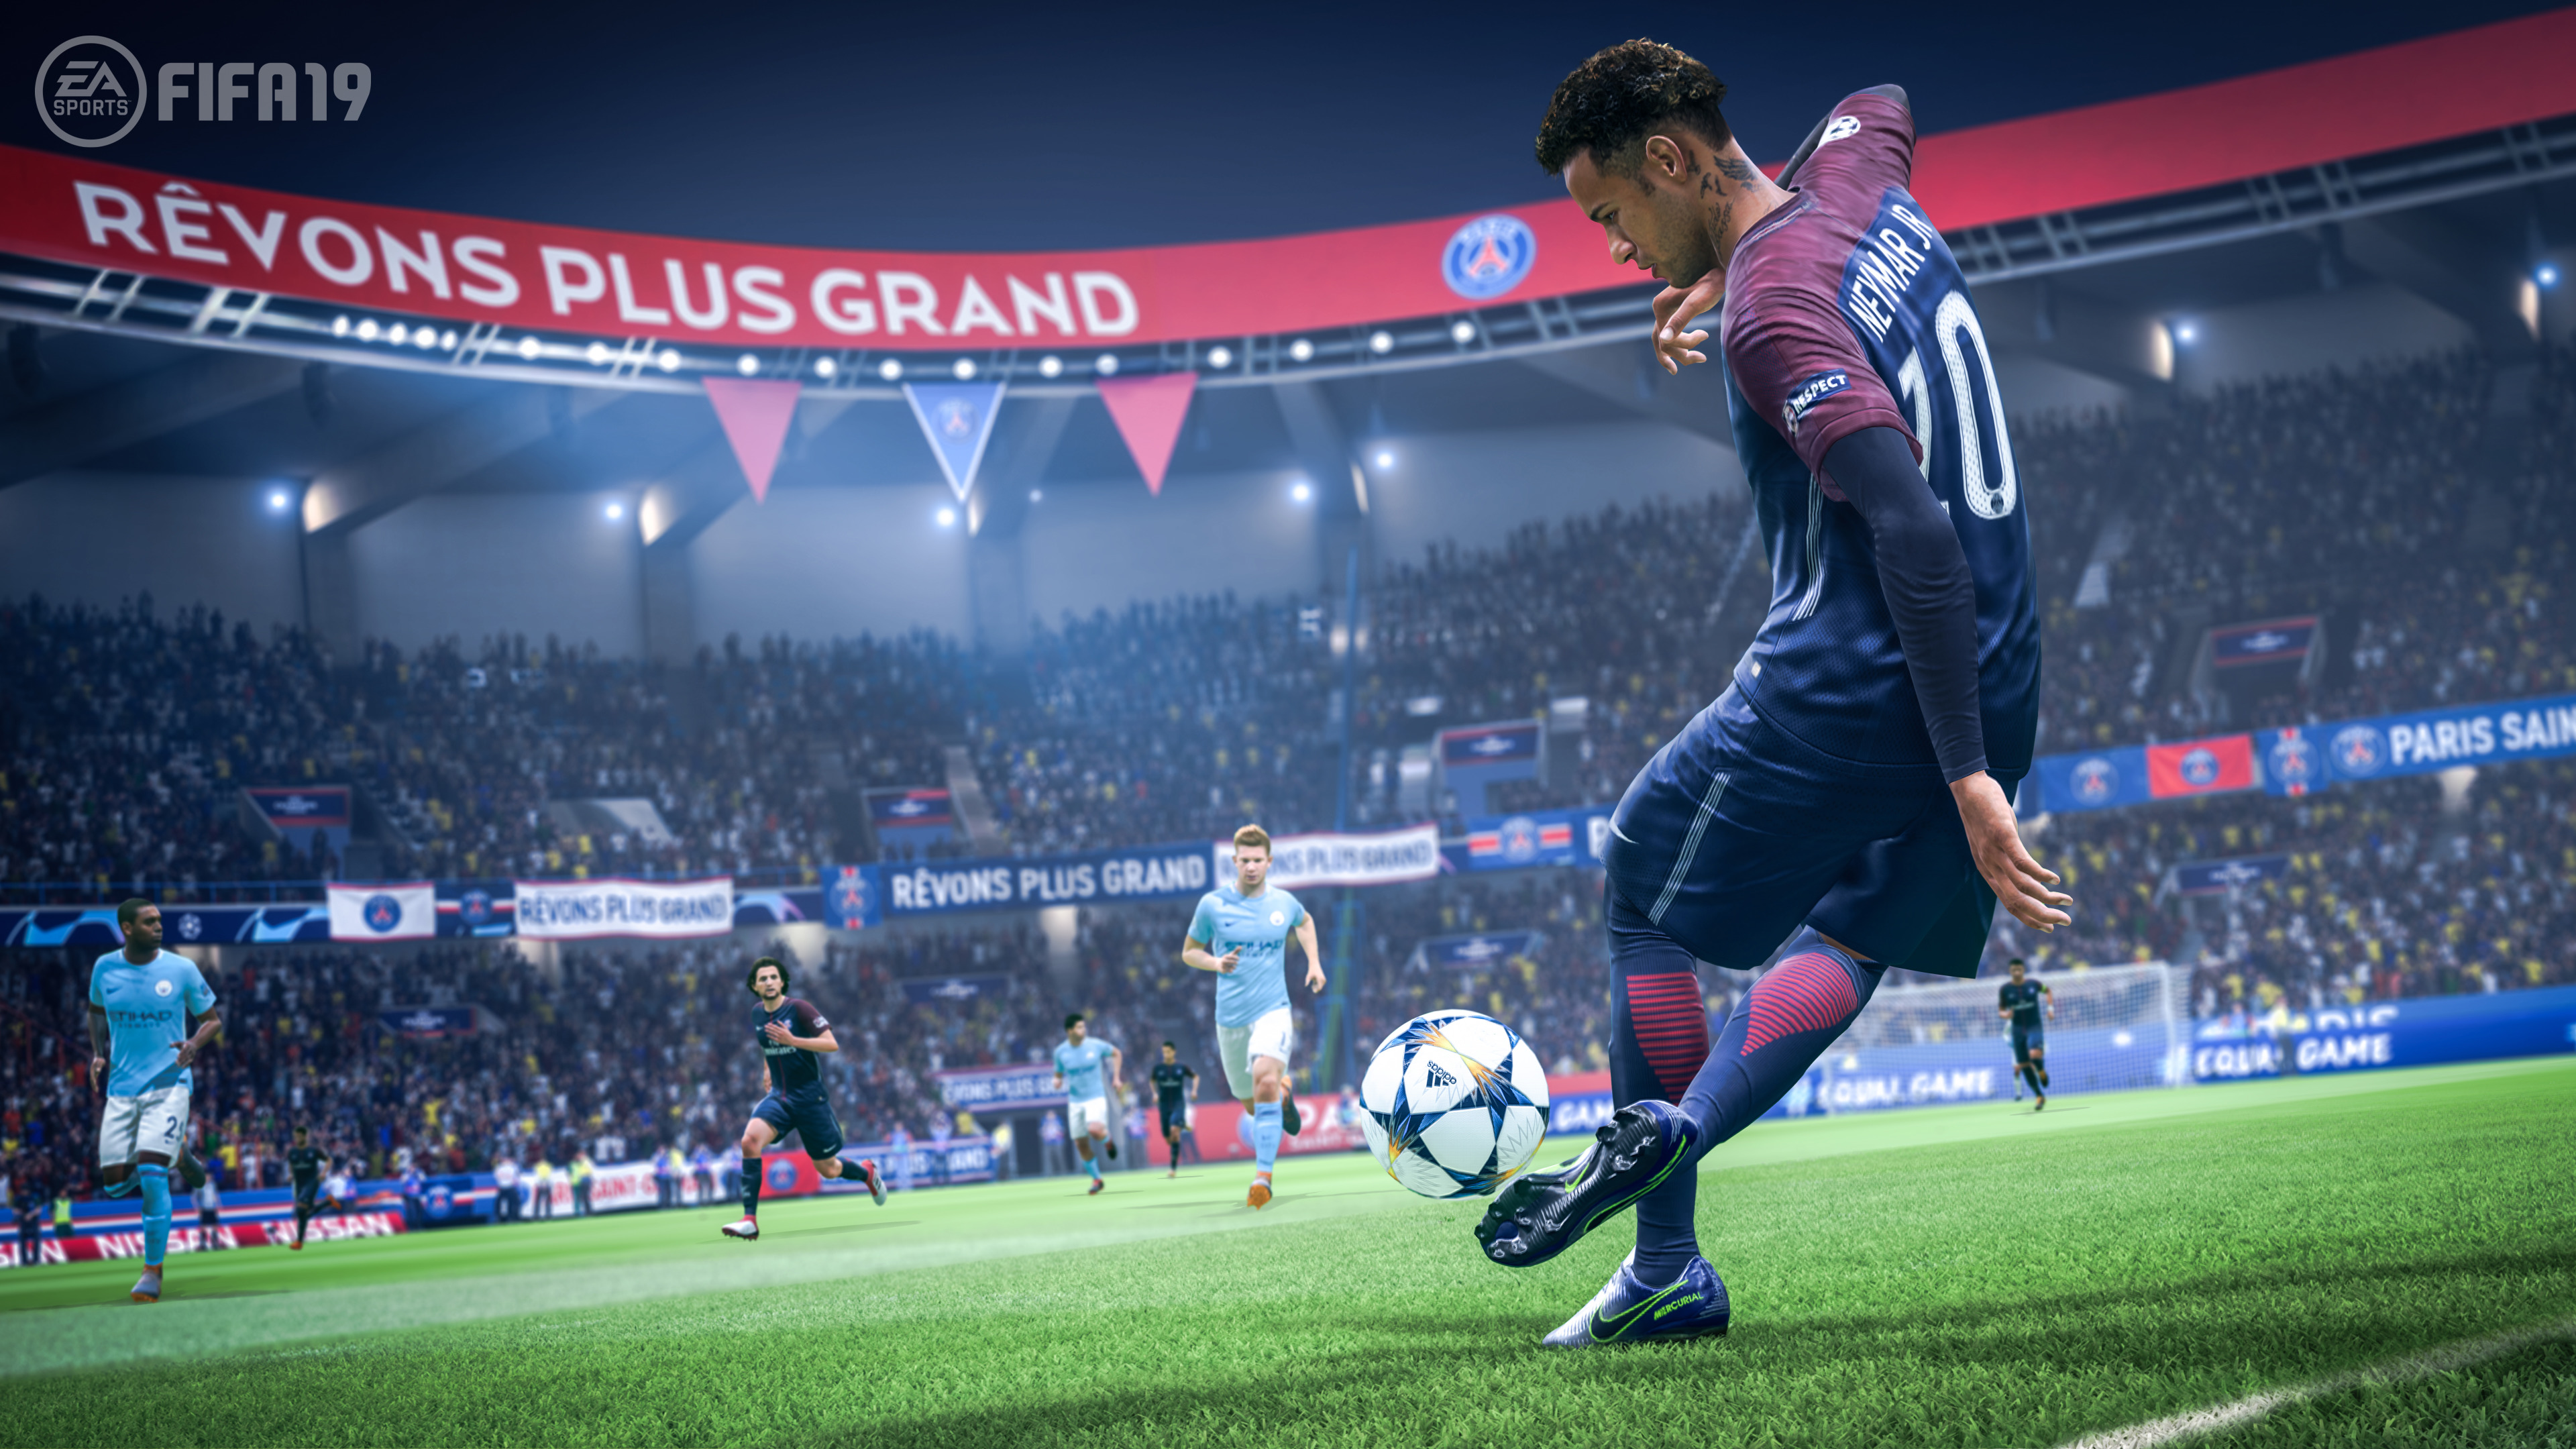 Neymar Fifa 19 HD Games 4k Wallpapers Images Backgrounds Photos